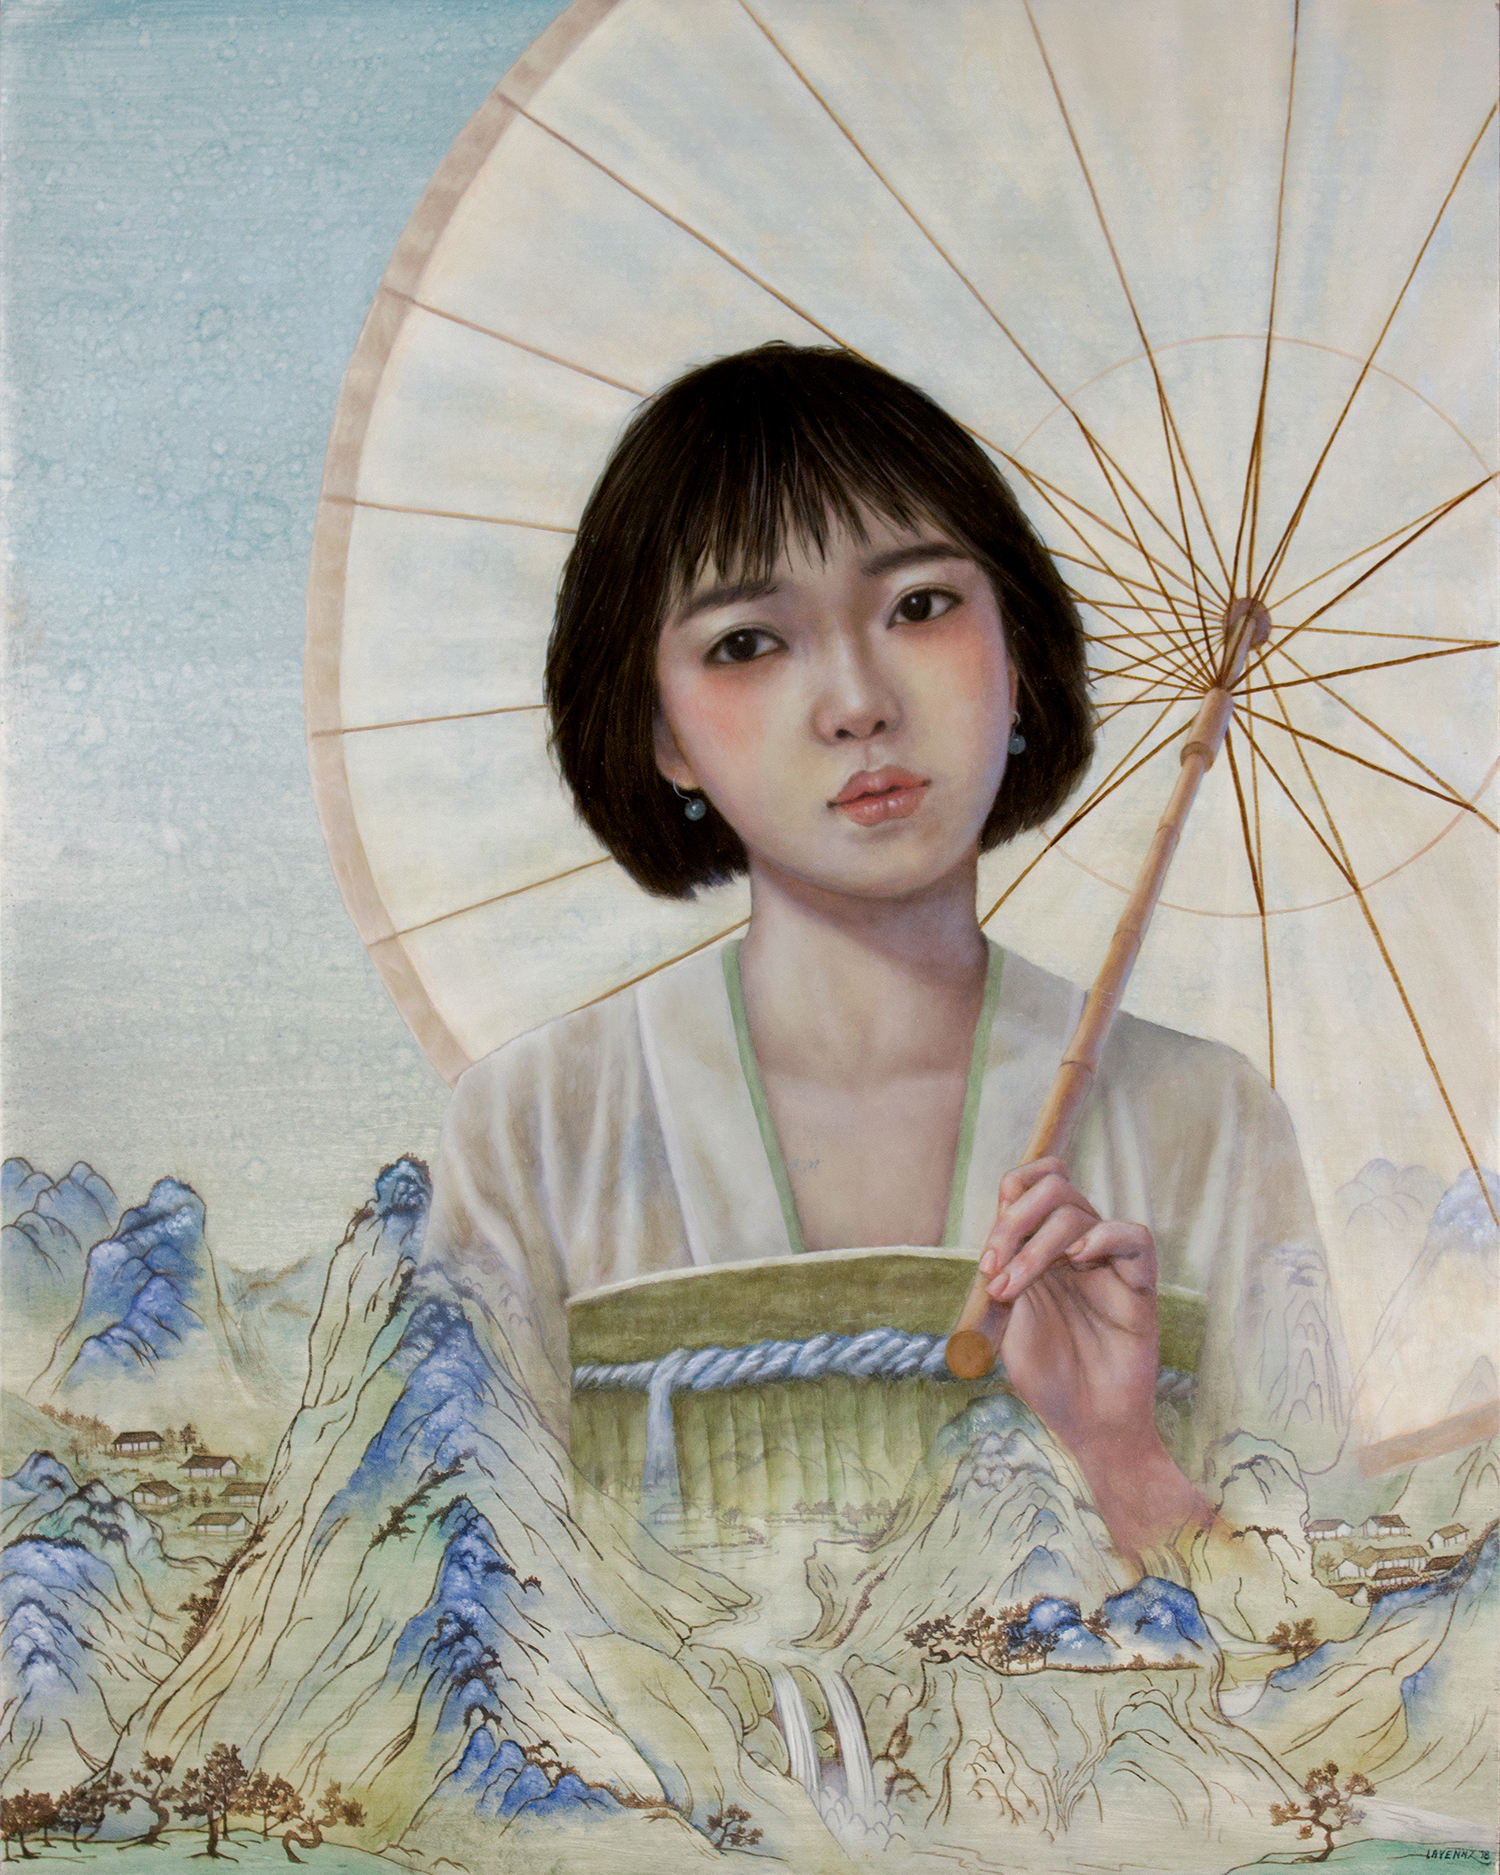 叙旧 (Xujiu, talking about old times), 2018